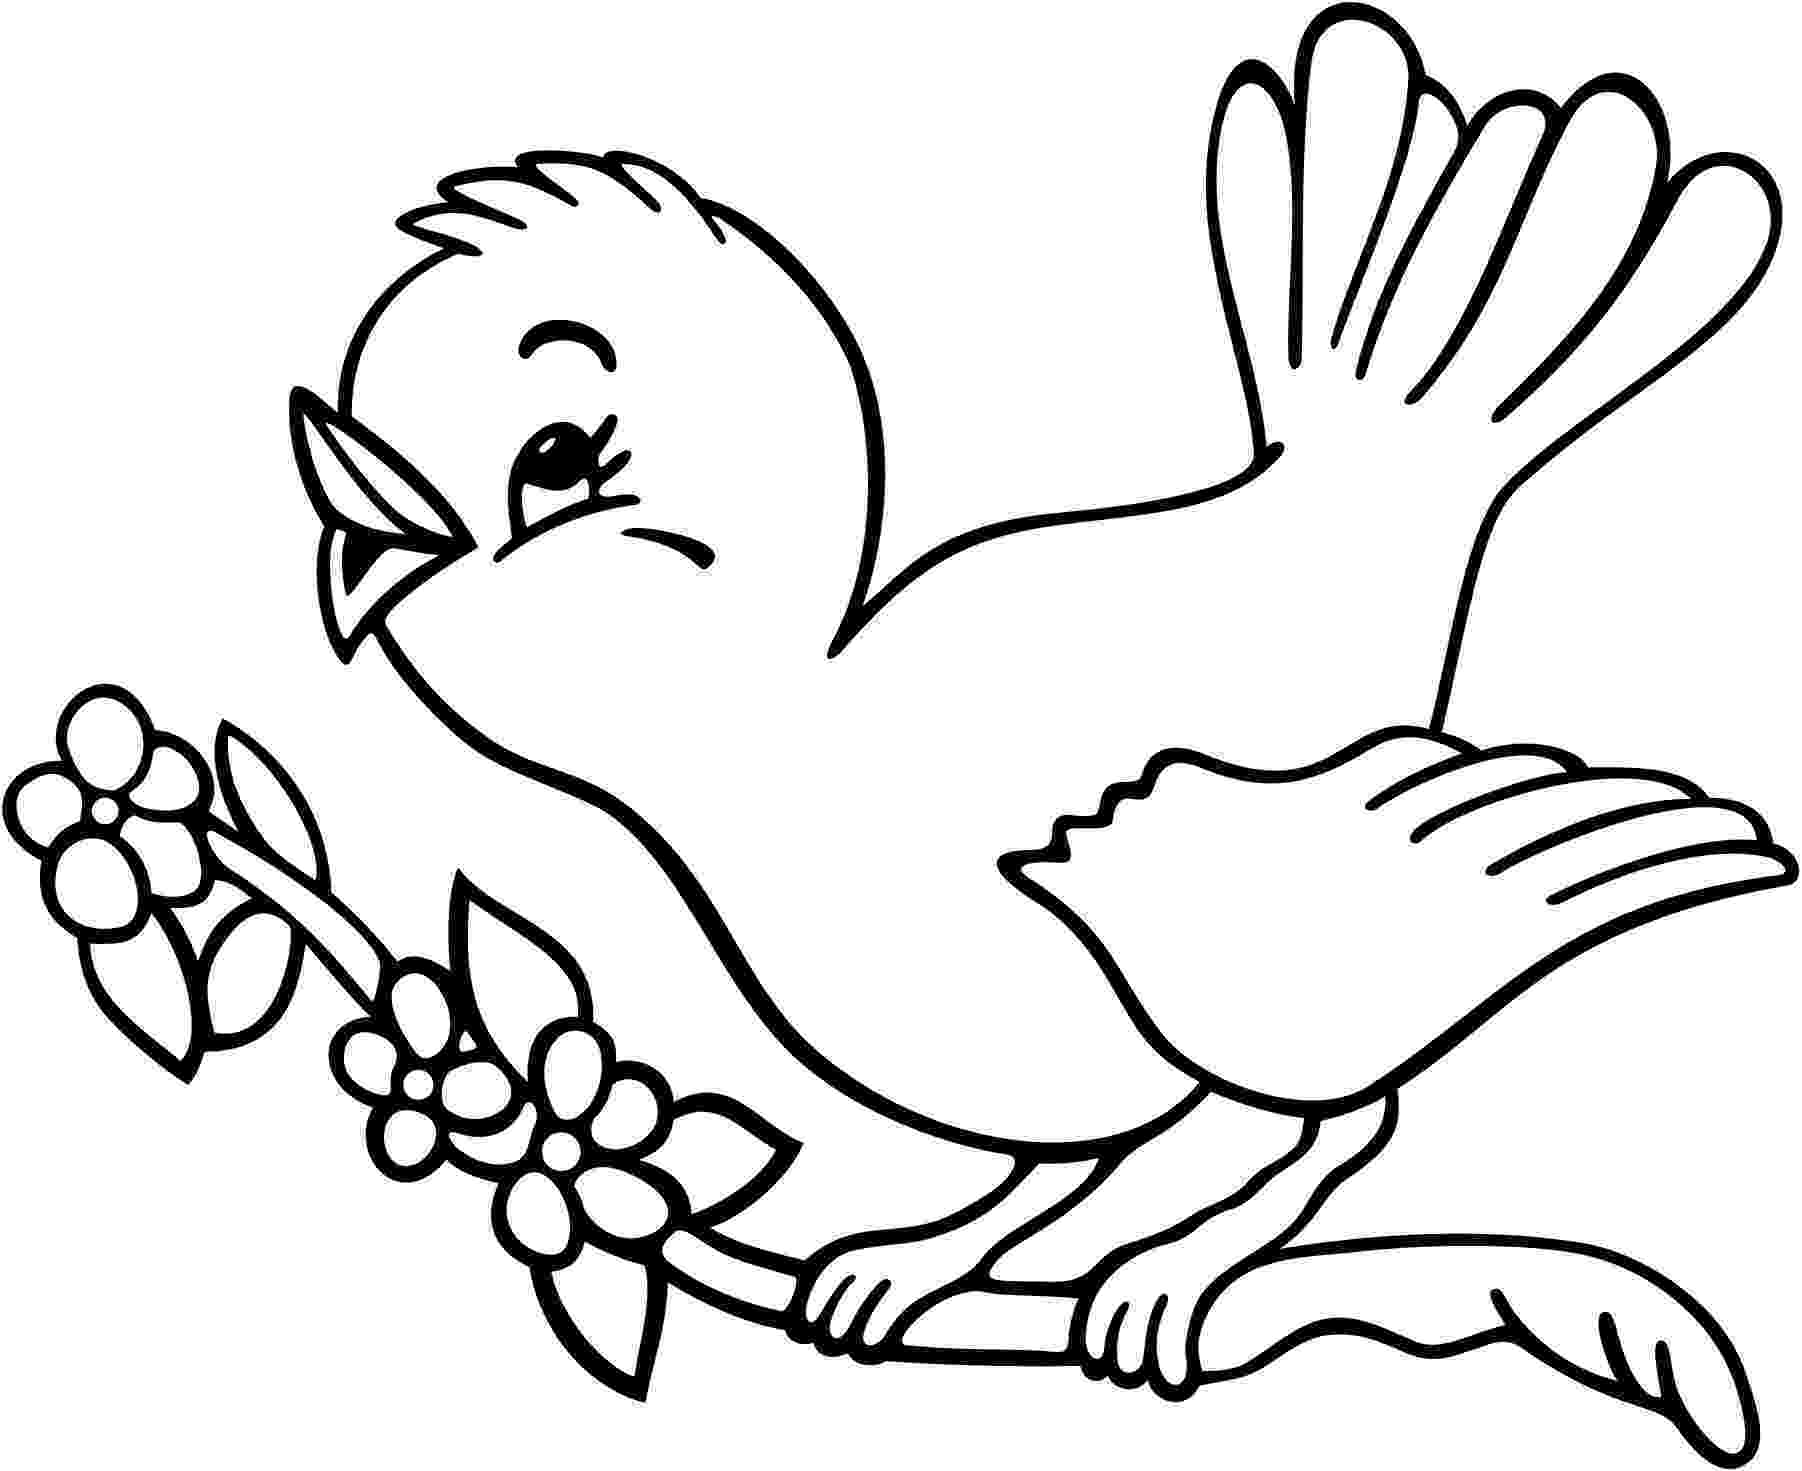 pigeon coloring sheet free dove coloring page bird coloring pages bird pigeon sheet coloring